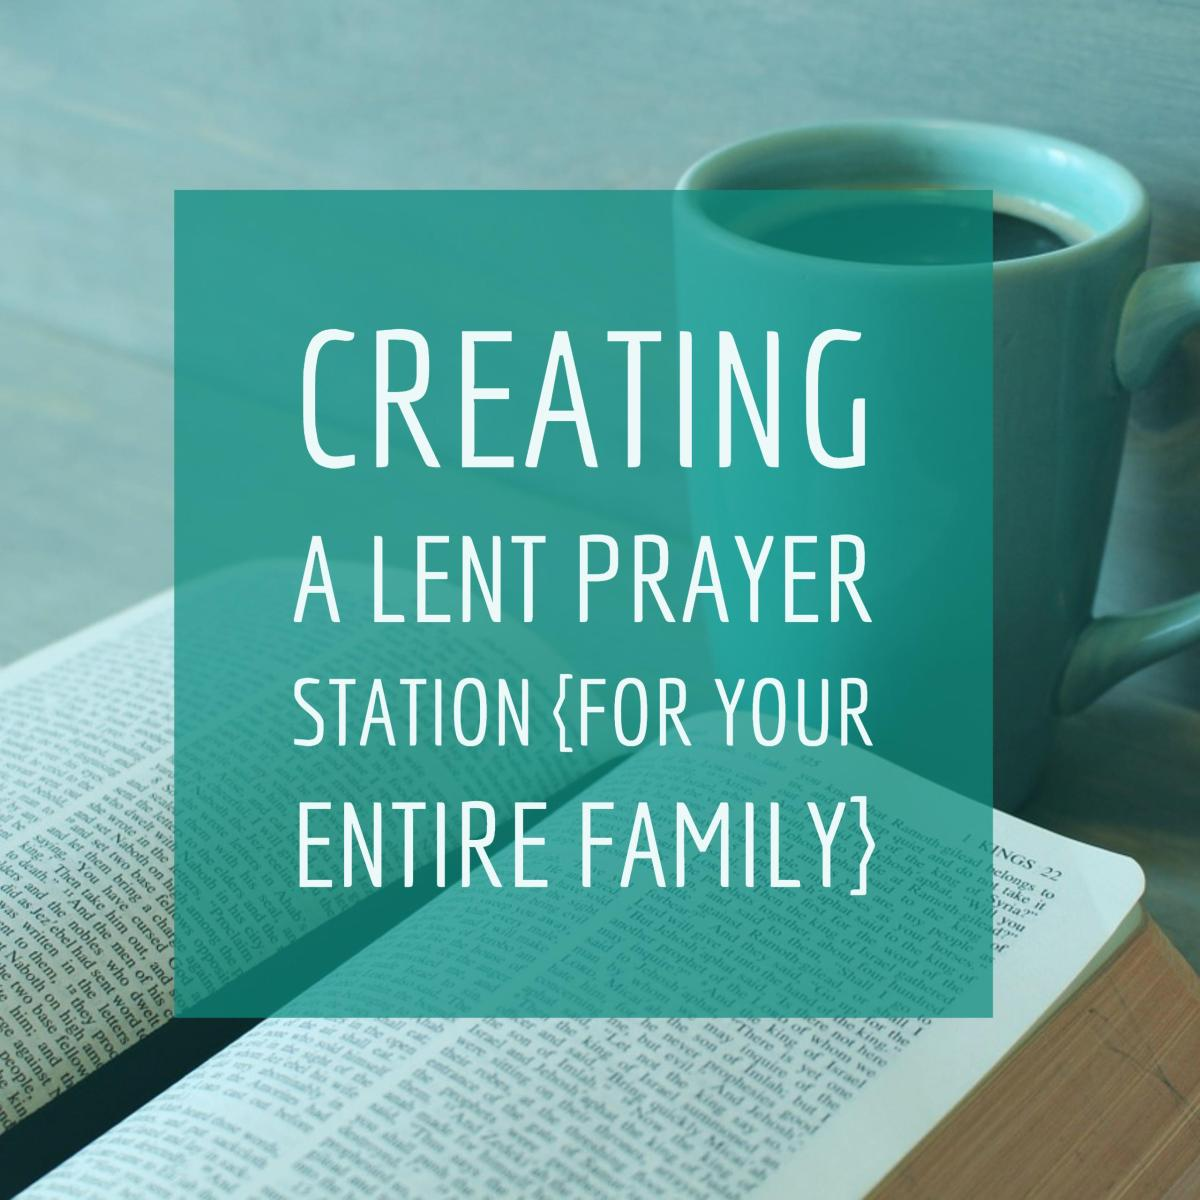 Creating A Lent Prayer Station For Your Entire Family – The Hen House